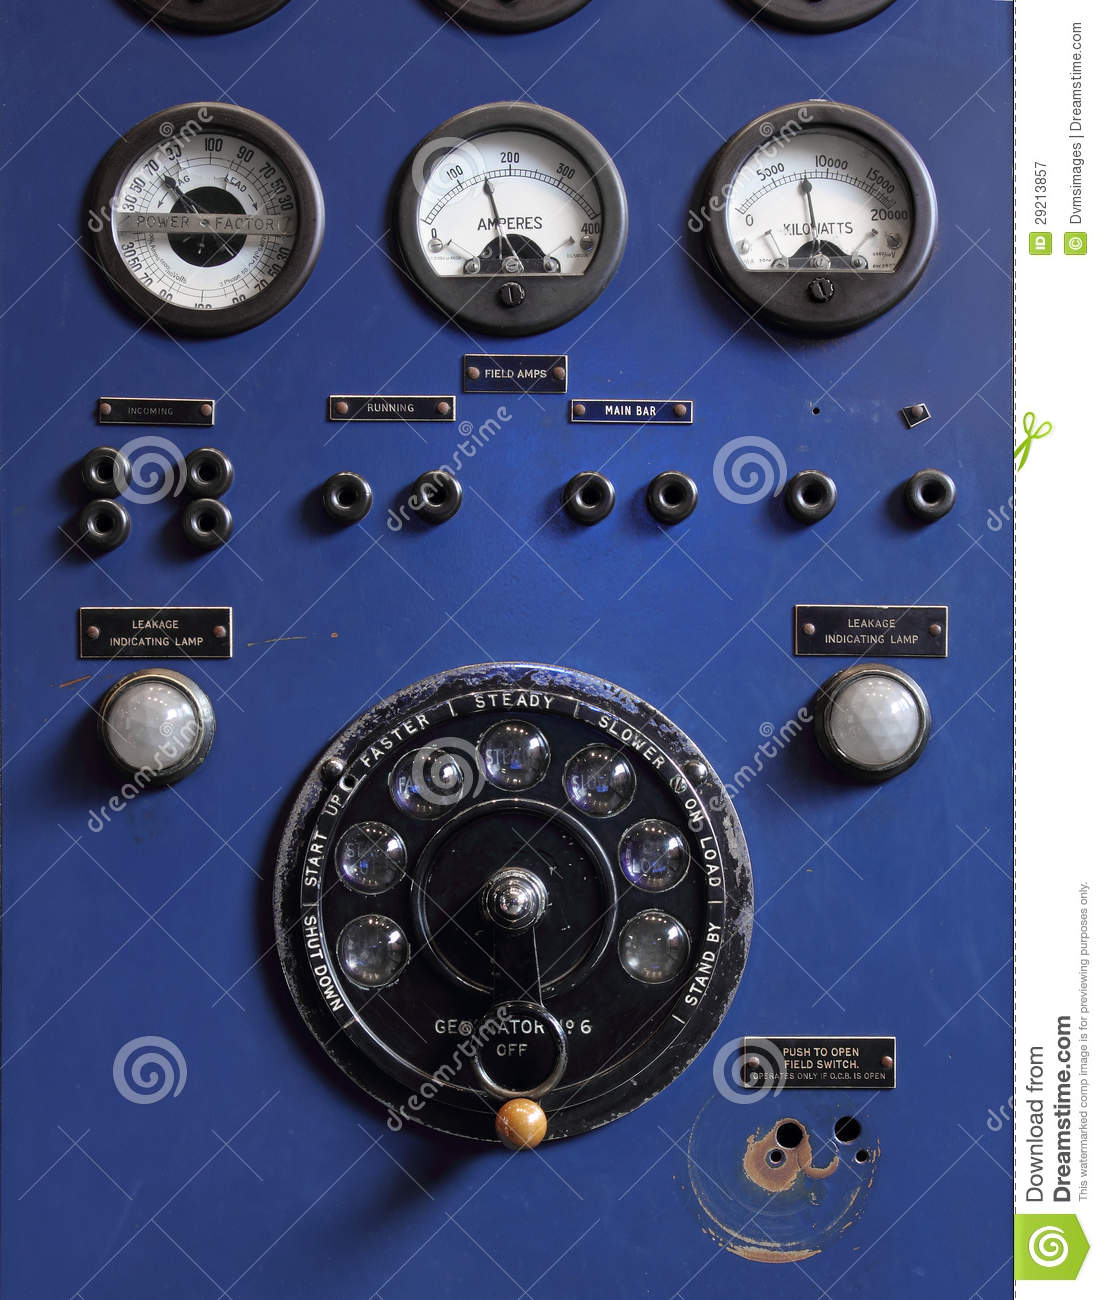 Old Control Panel Levers : Old control panel royalty free stock photography image